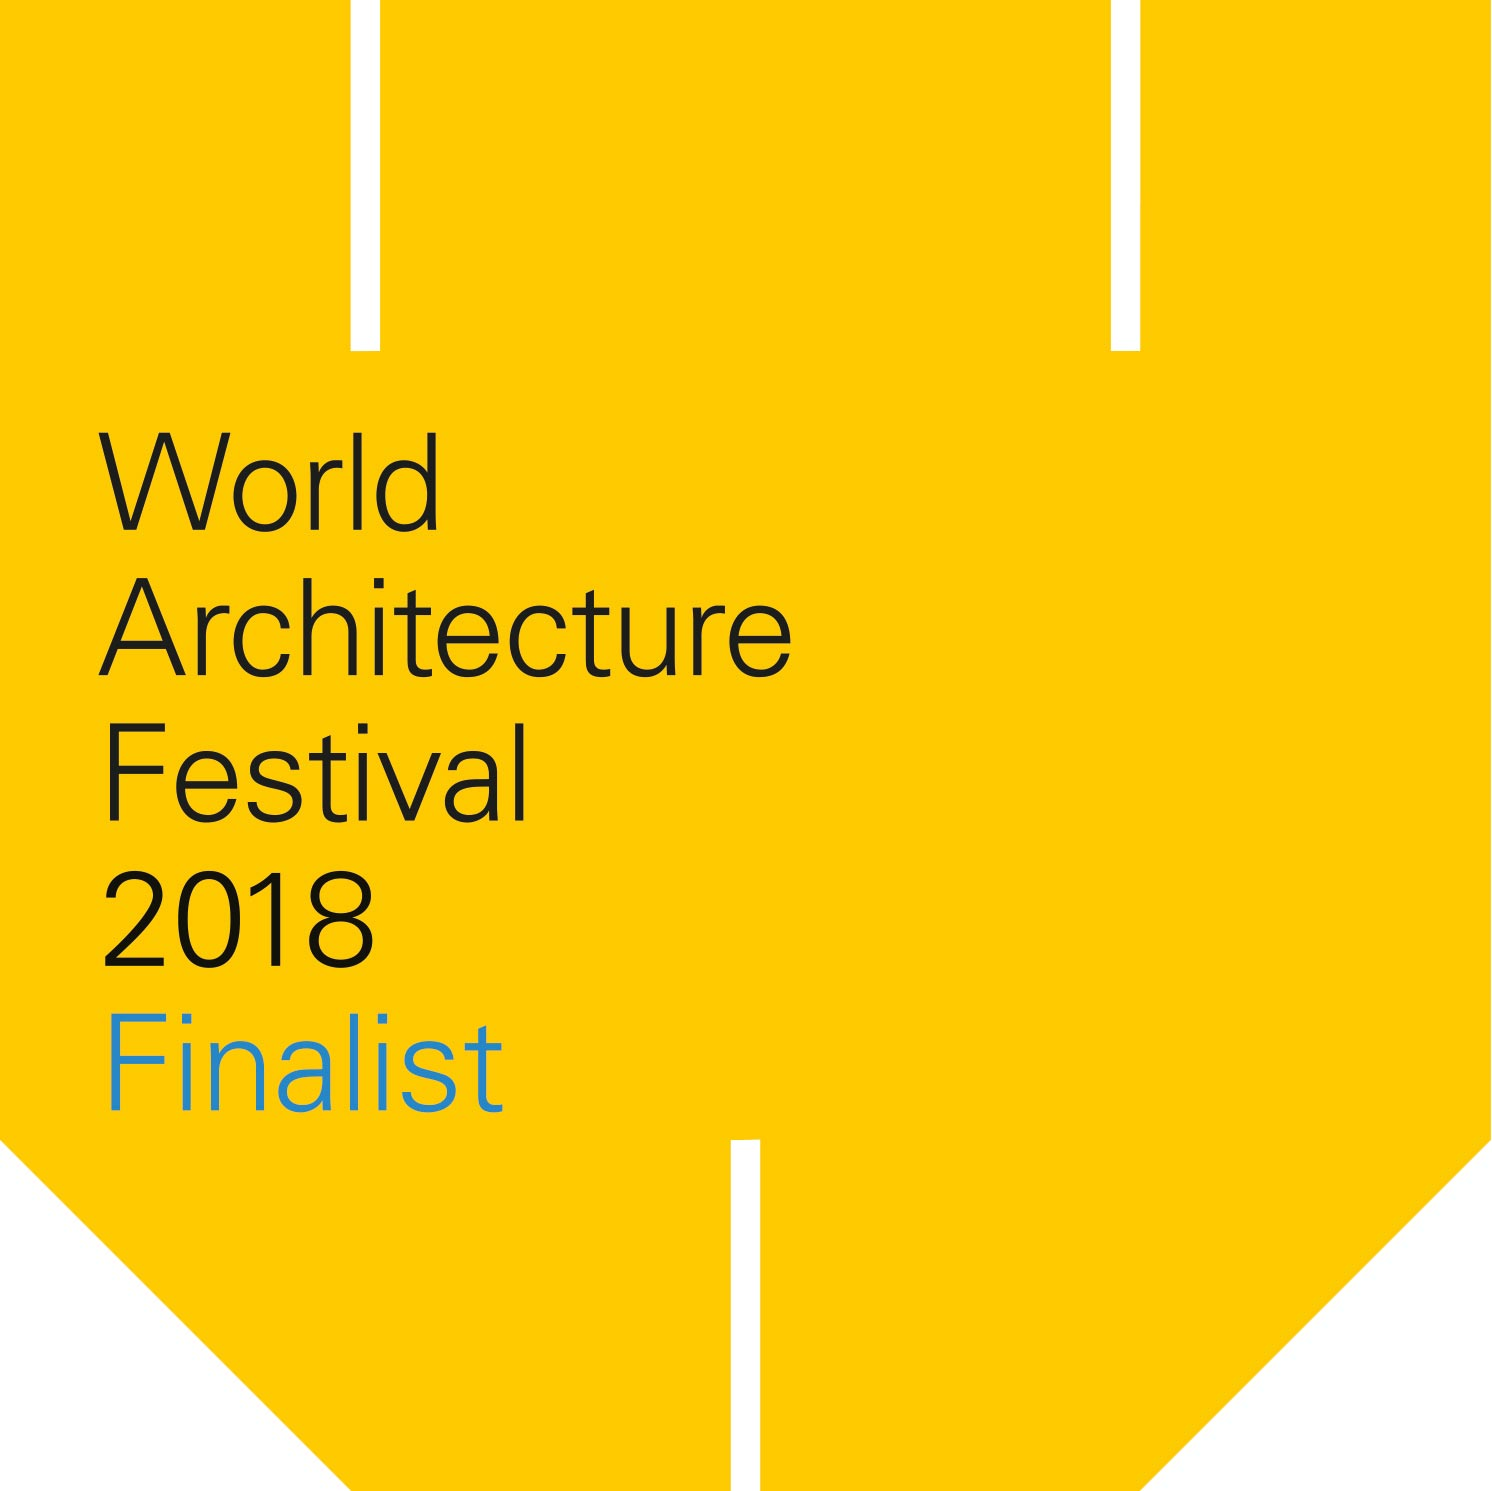 - The team at Reiulf Ramstad Architects is proud to announce that our projects have been shortlisted in 3 categories for the World Architecture Festival 2018!